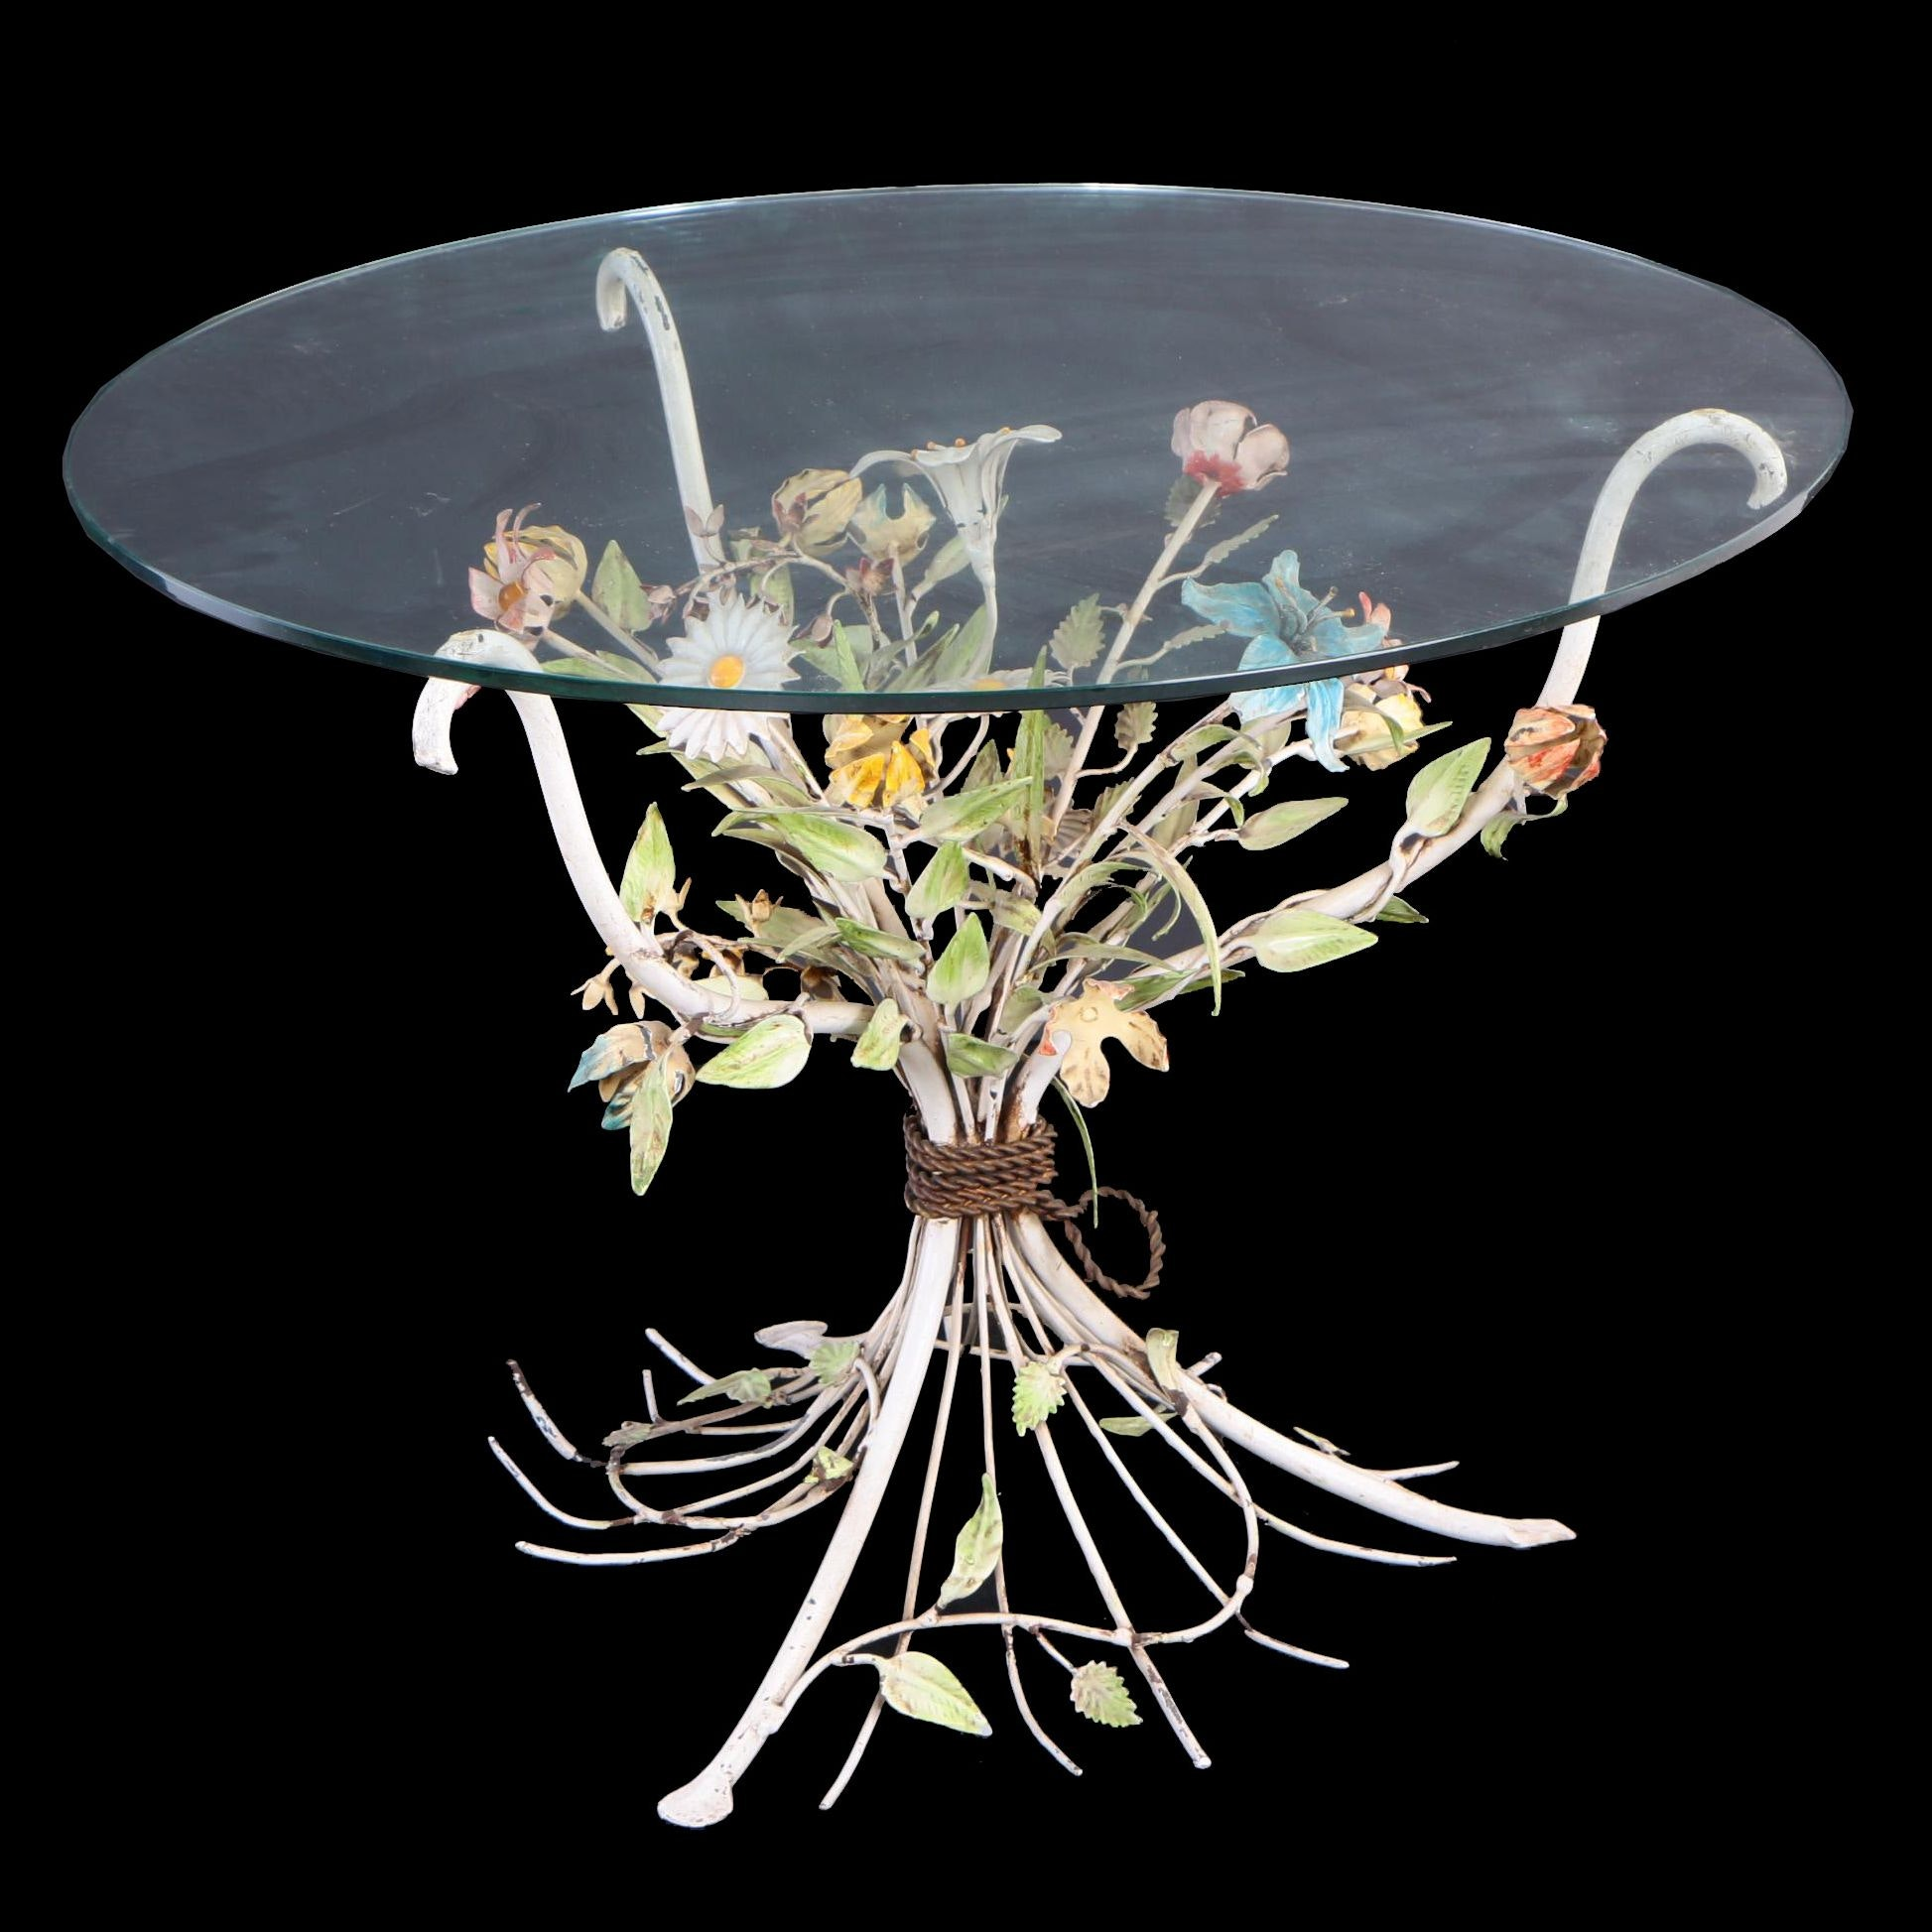 Tole Peinte and Glass-Top Floral Side Table, Probably Italian, 20th Century